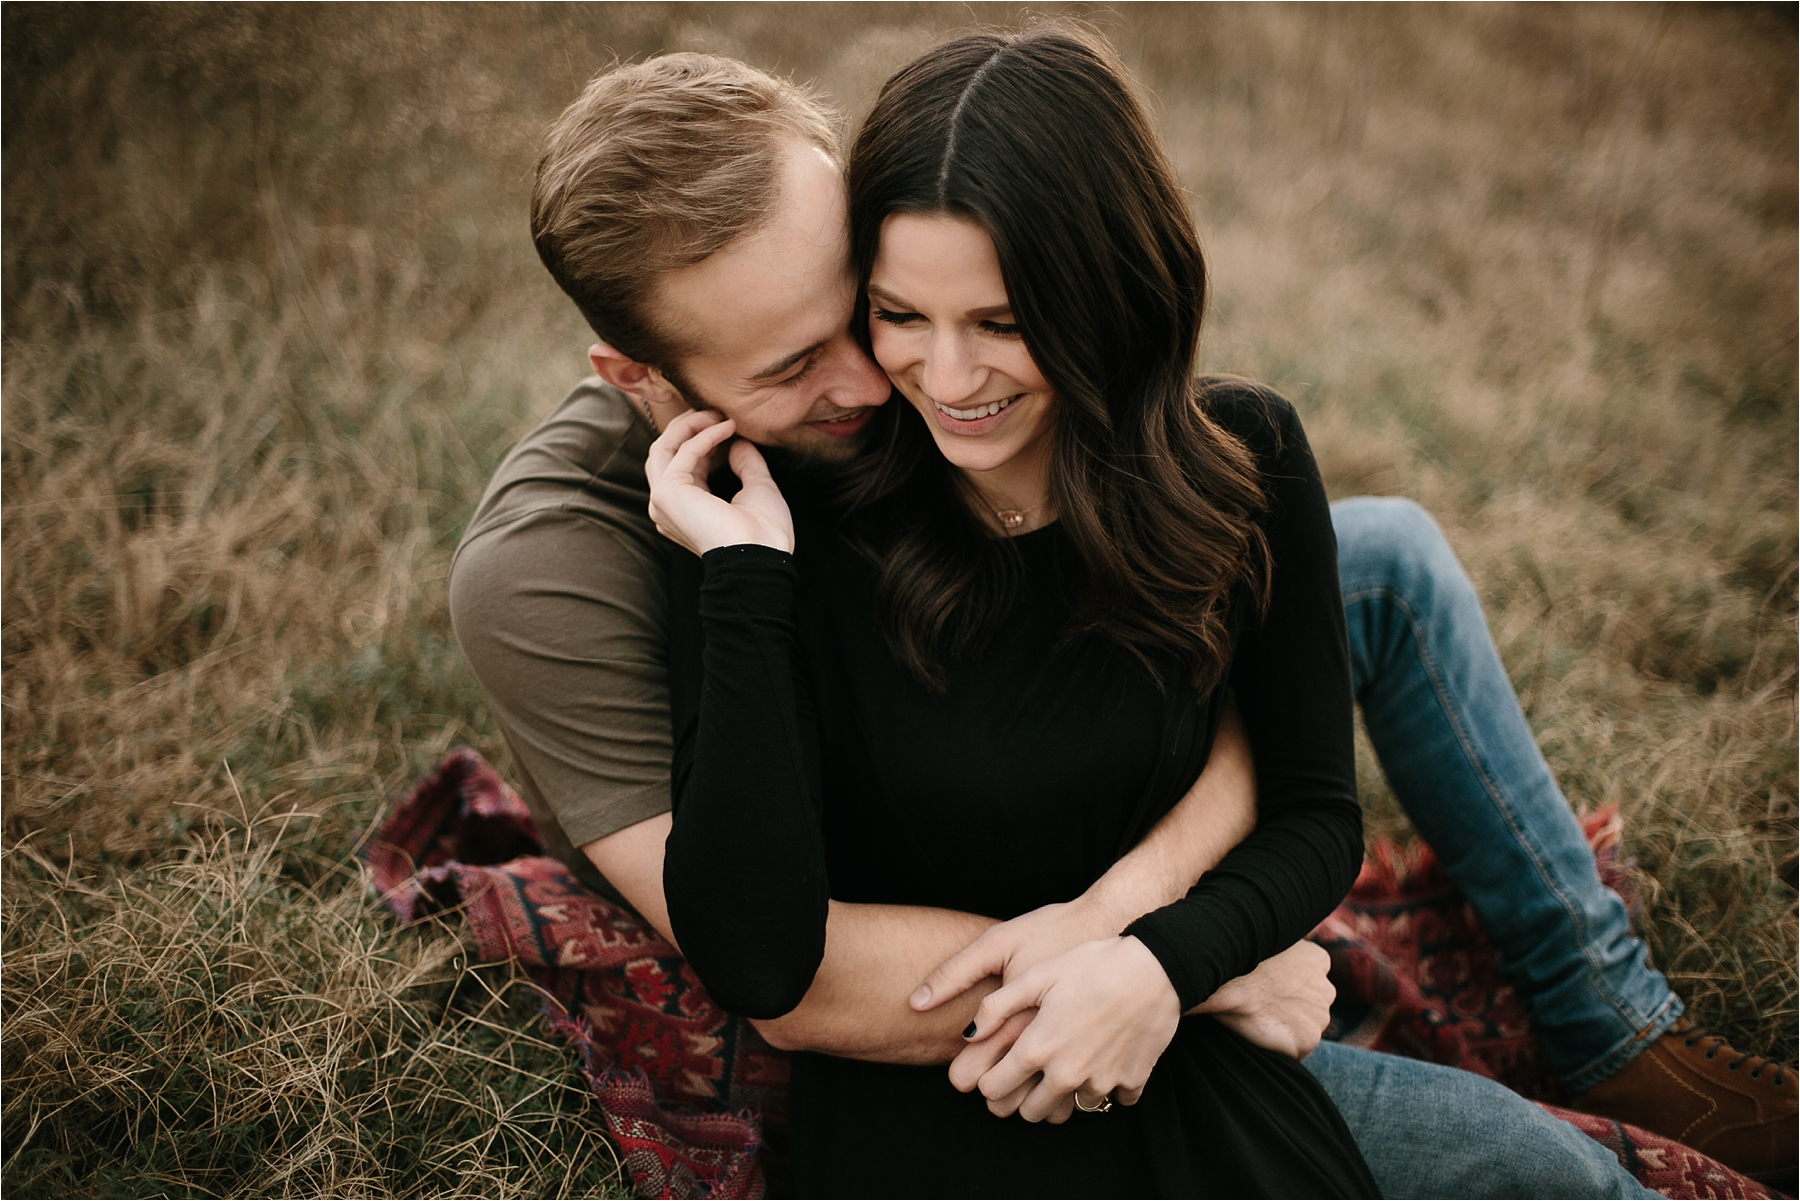 Trey + Phoebe __ a playful, intimate engagement session with dark_neutral outfit inspiration by North Texas Wedding Photographer Rachel Meagan Photography __ 08